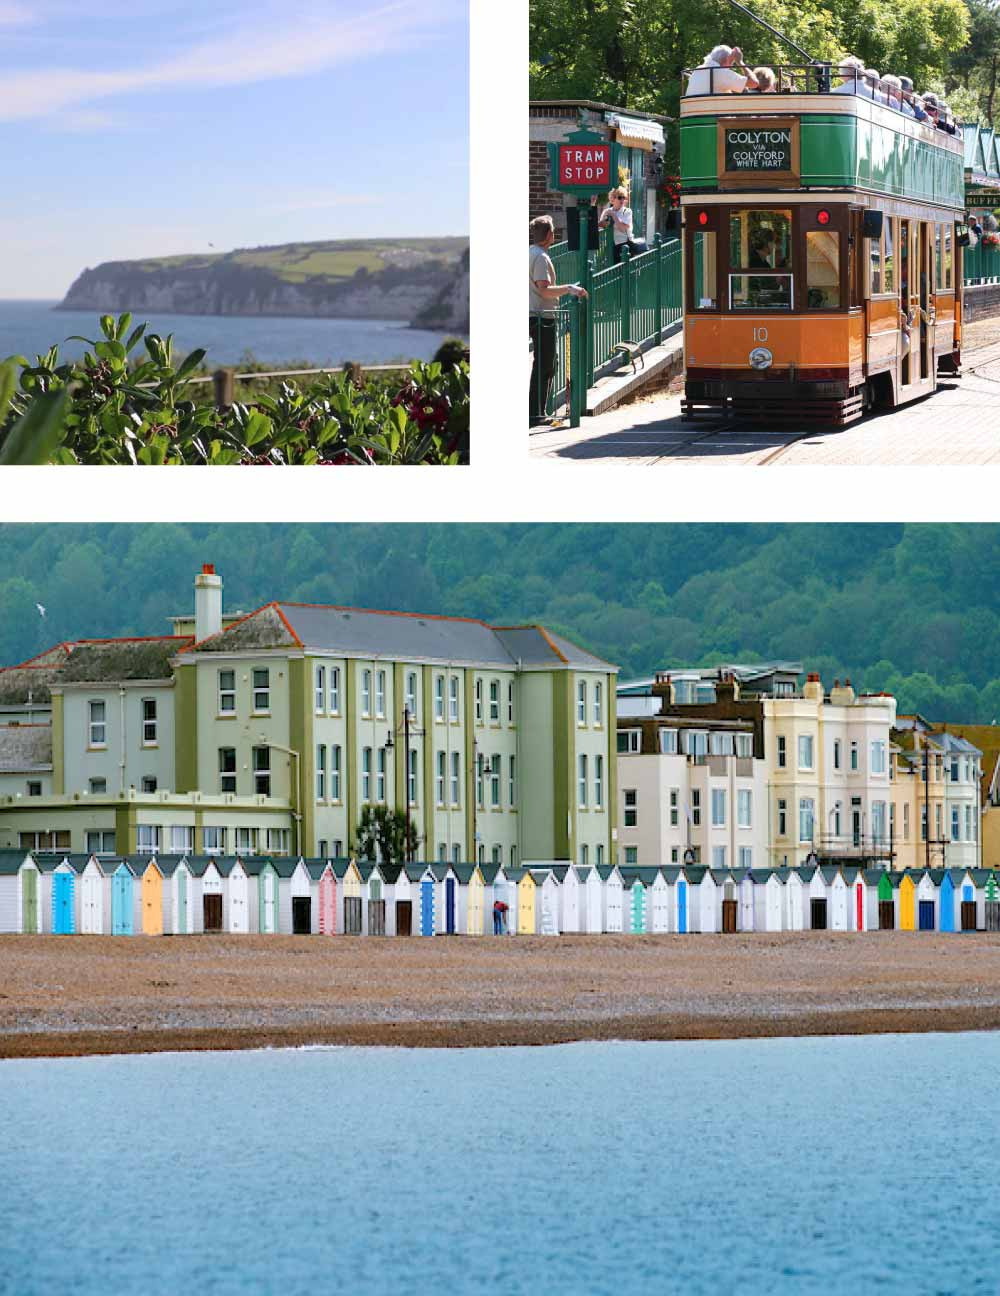 Images of Seaton